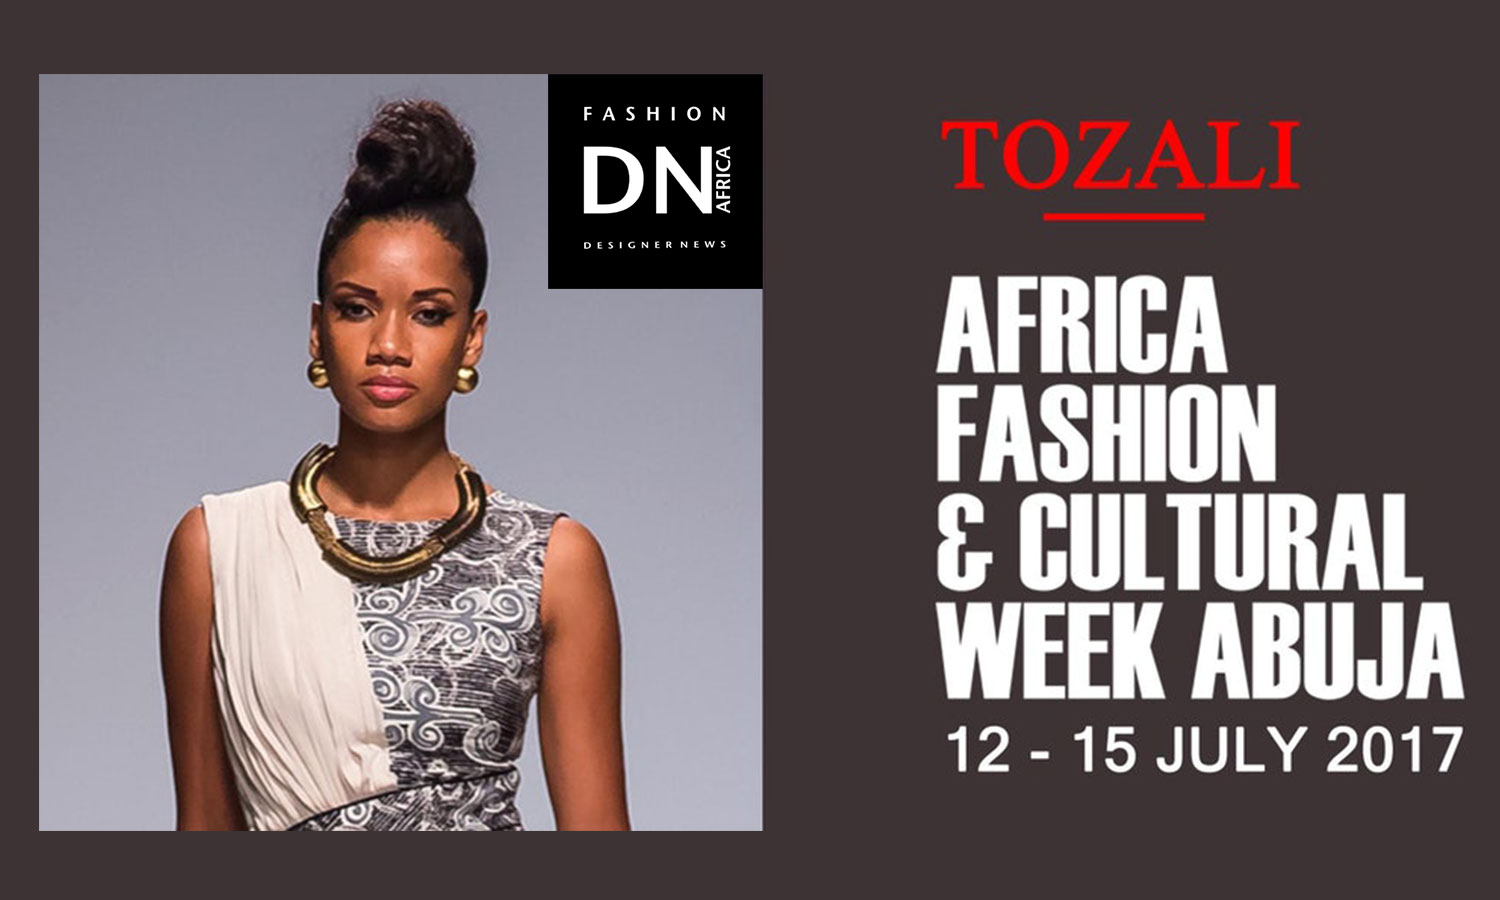 Africa-Fashion-cultural-week-abuja-Tozali